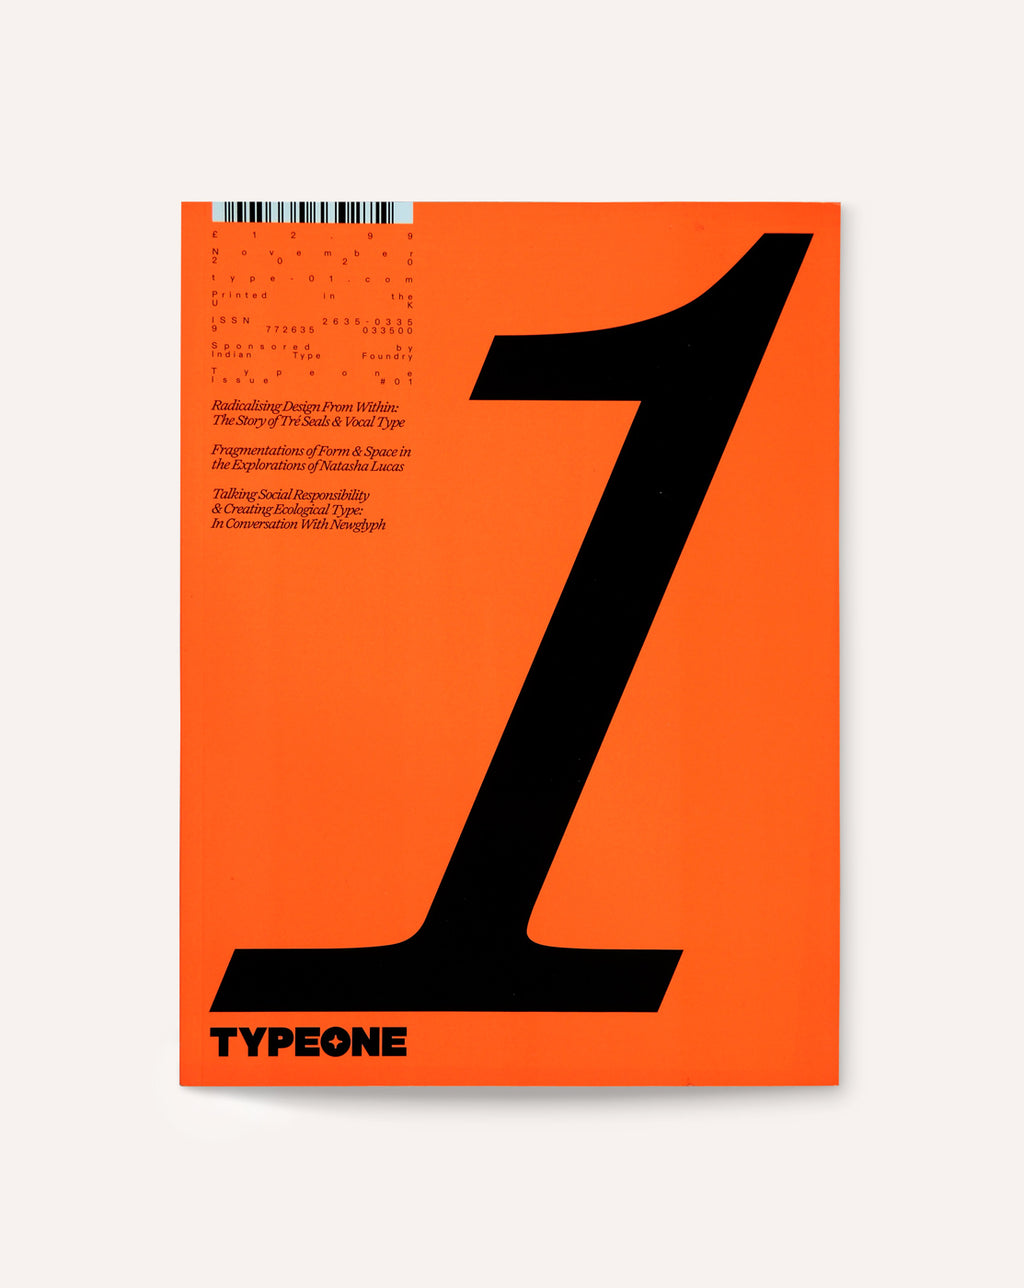 TYPEONE: Issue 01